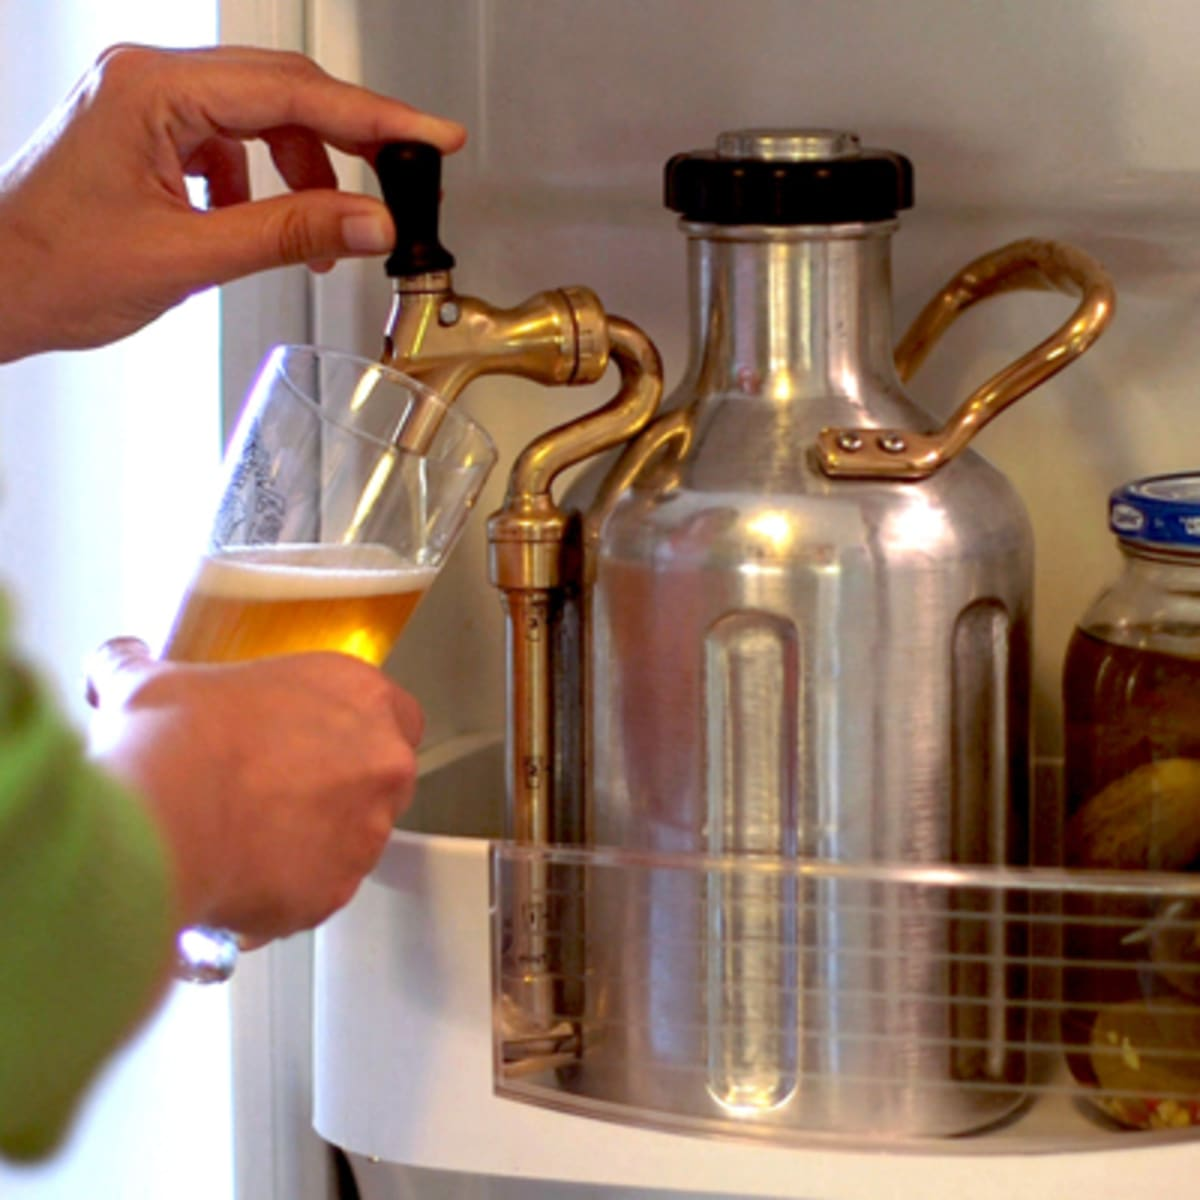 5 Best Beer Gifts To Give Craft Beer Lovers For Christmas In 2014 Thestreet